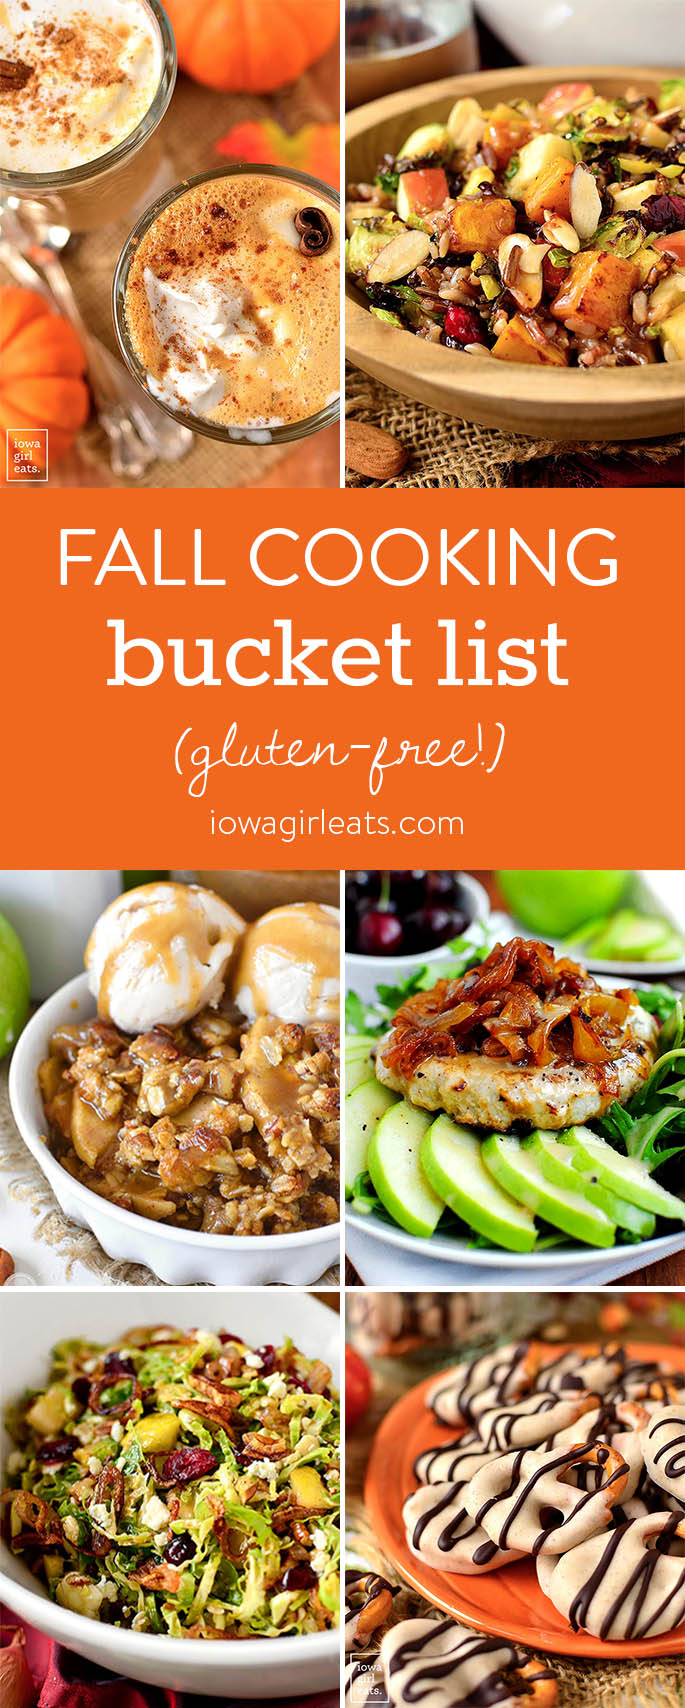 Don't let fall slip away without checking off these warming, hearty recipes from your fall cooking bucket list! | iowagirleats.com